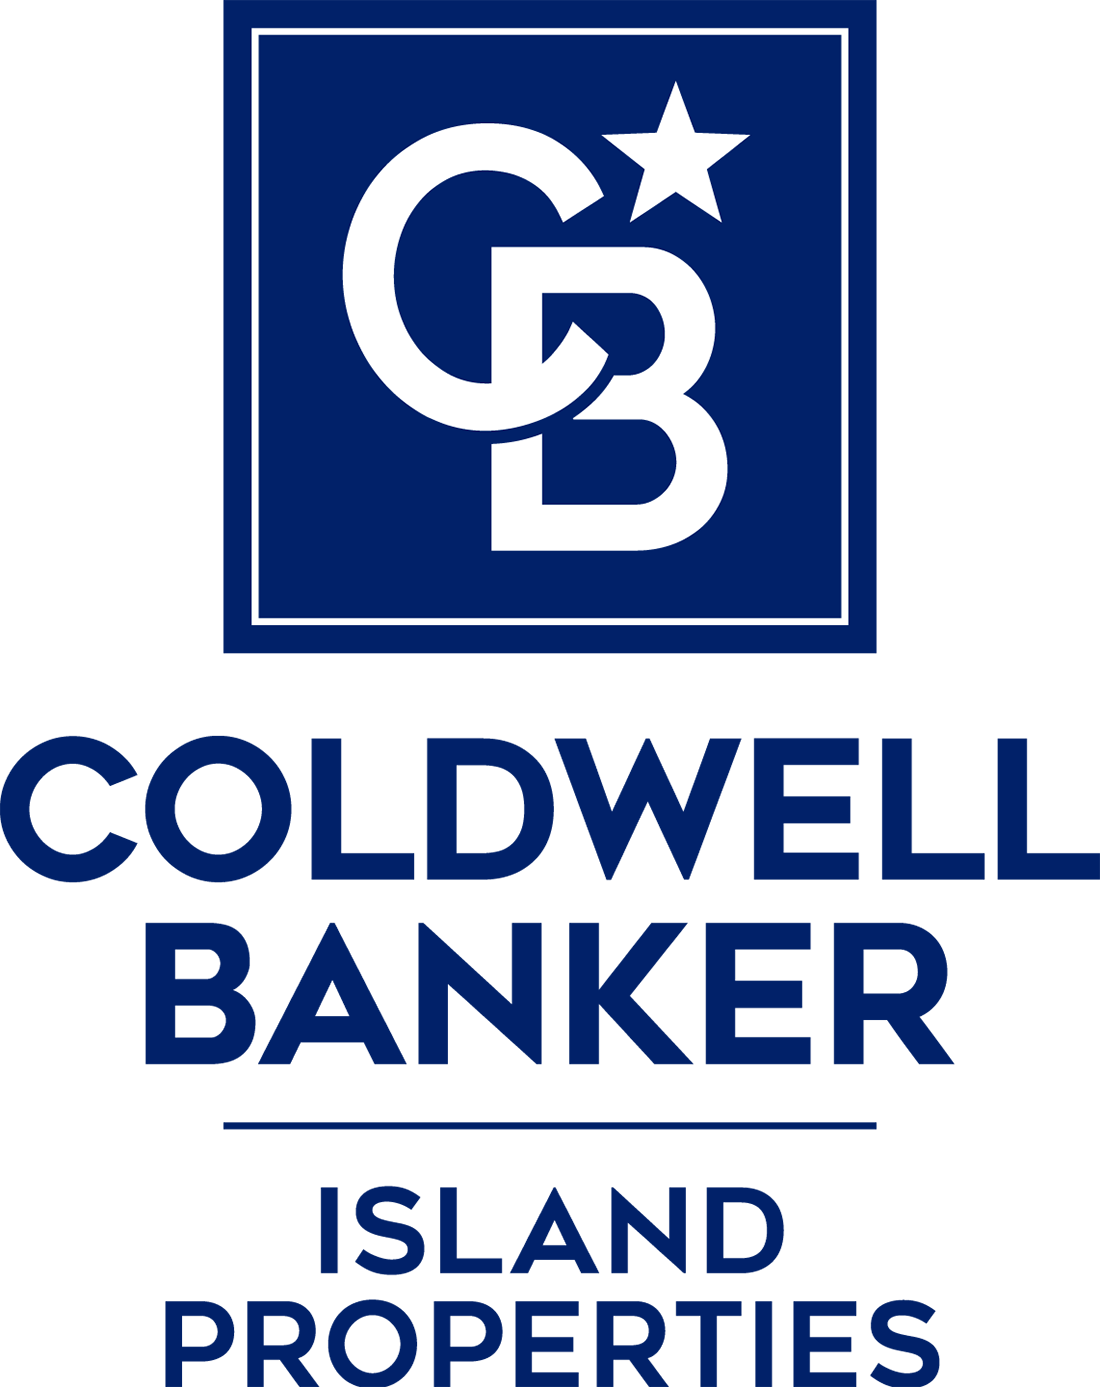 Kevin E Lewis - Coldwell Banker Island Properties Logo